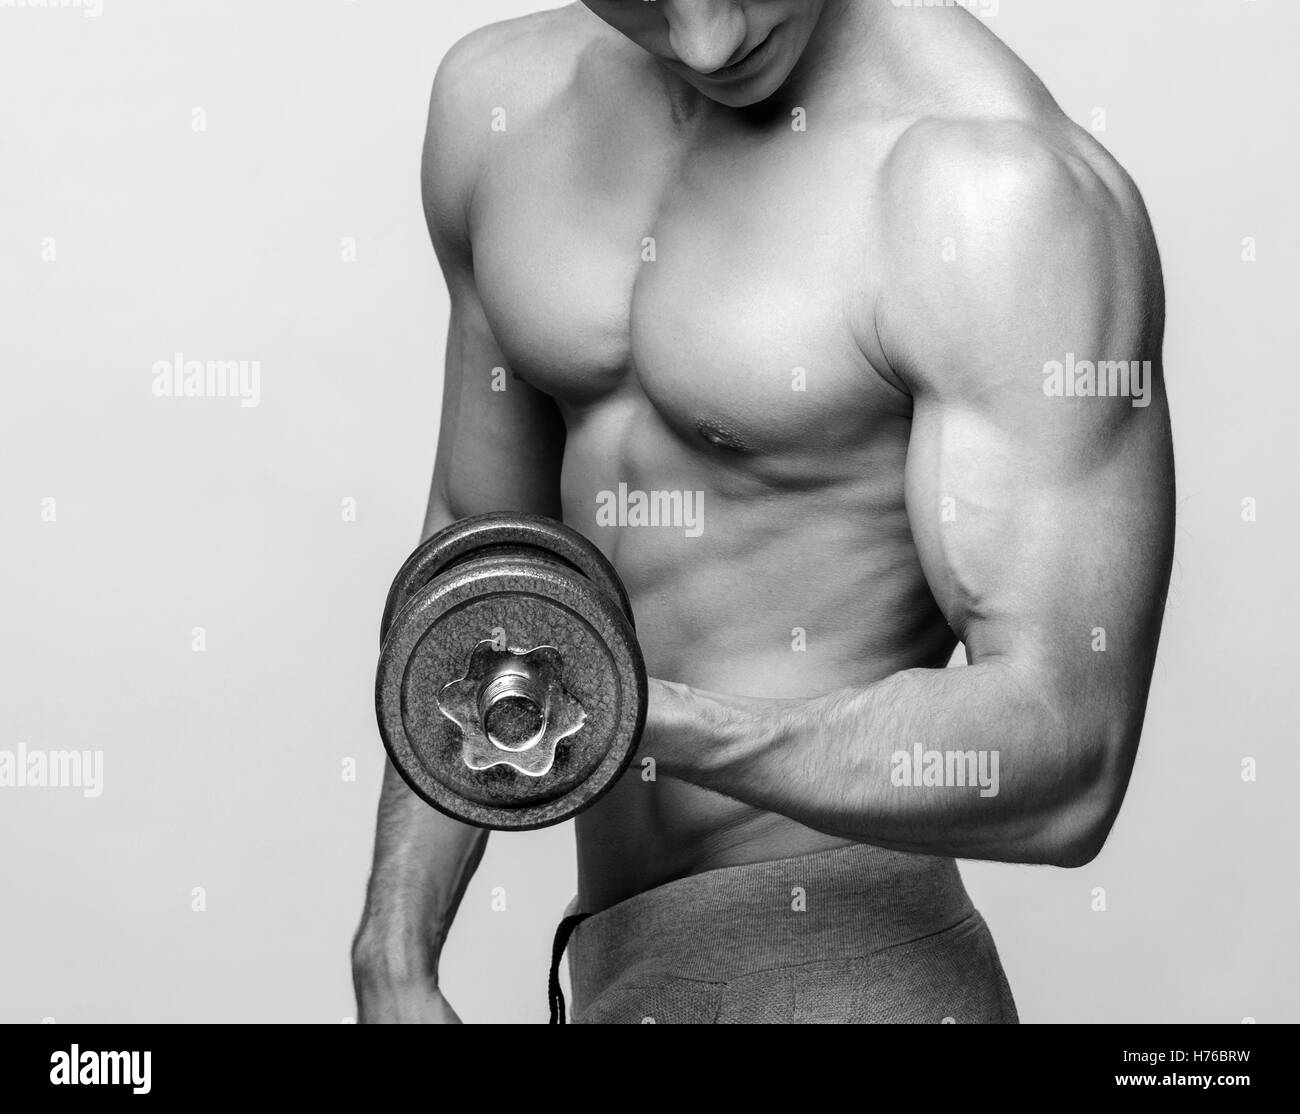 Shirtless Bodybuilder Holding Dumbell And Showing His Muscular Arms